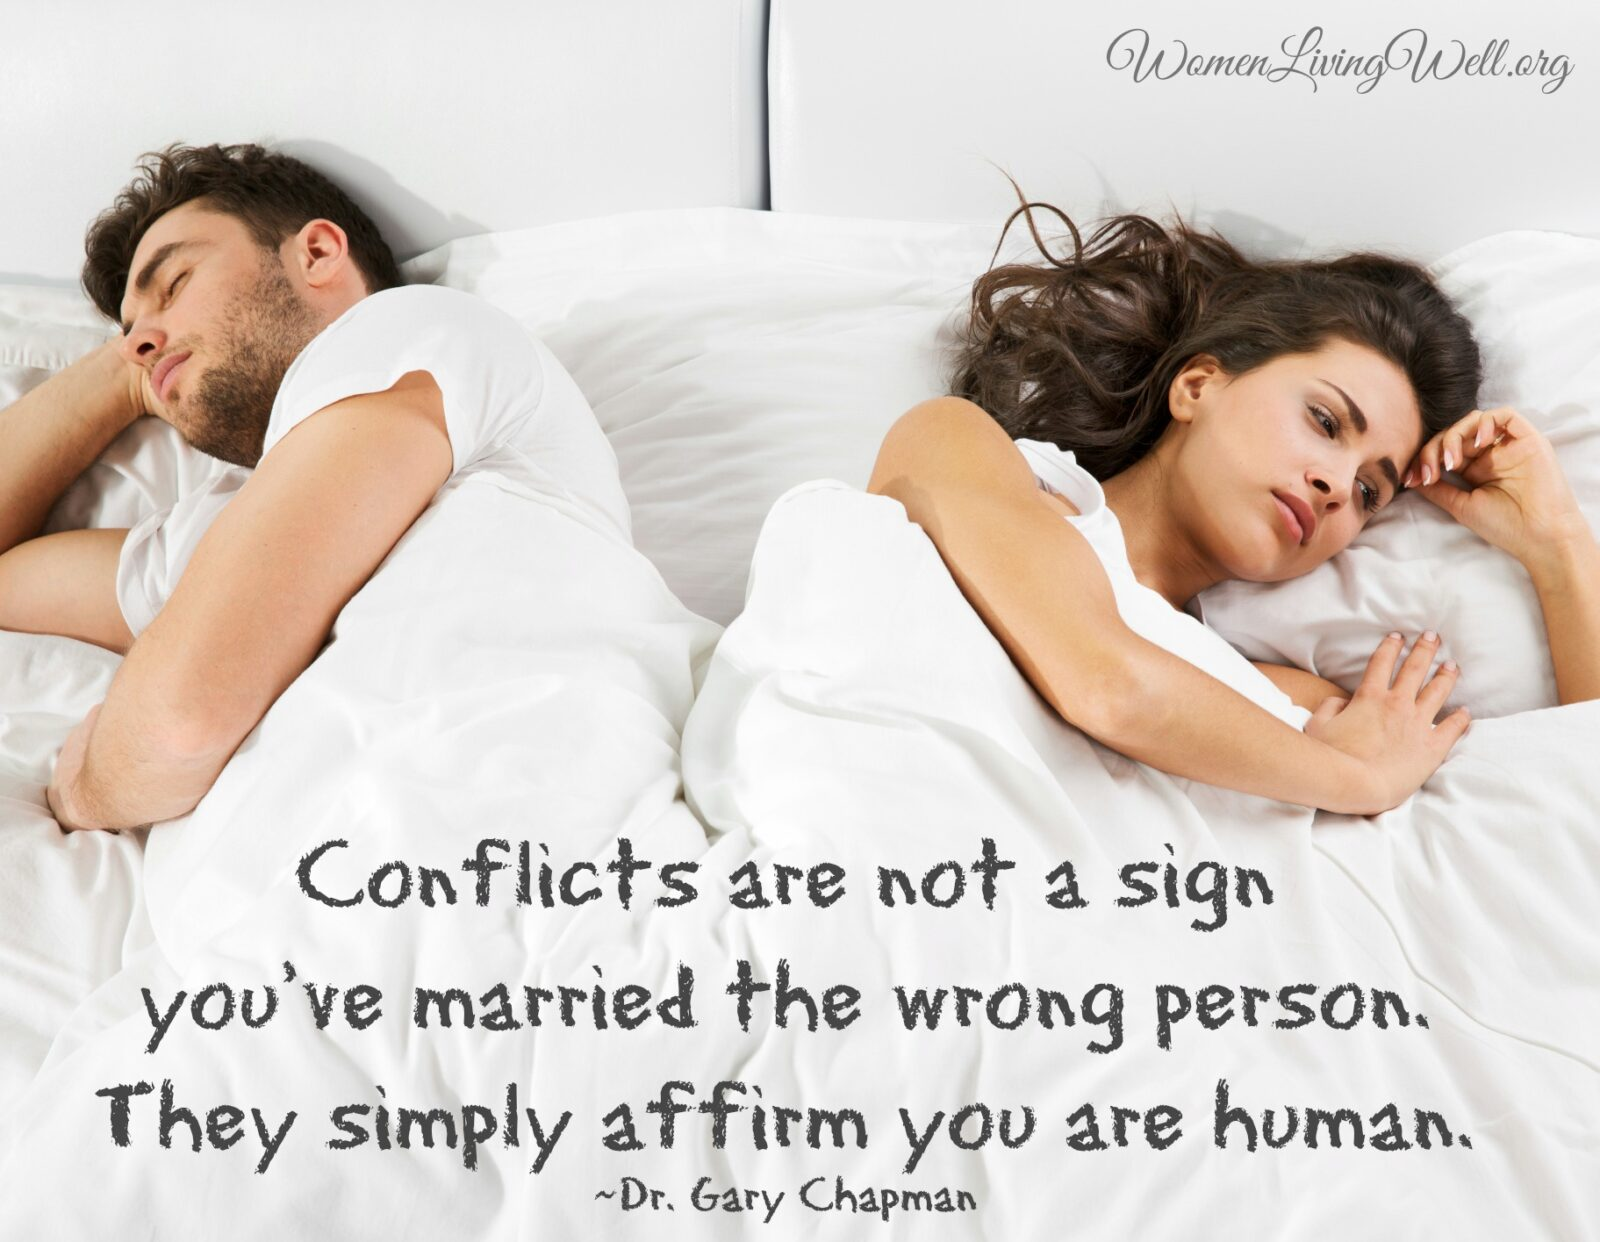 Conflicts are not a sign you've married the wrong person. They simply affirm you are human.  #Biblestudy #Genesis #WomensBibleStudy #GoodMorningGirls